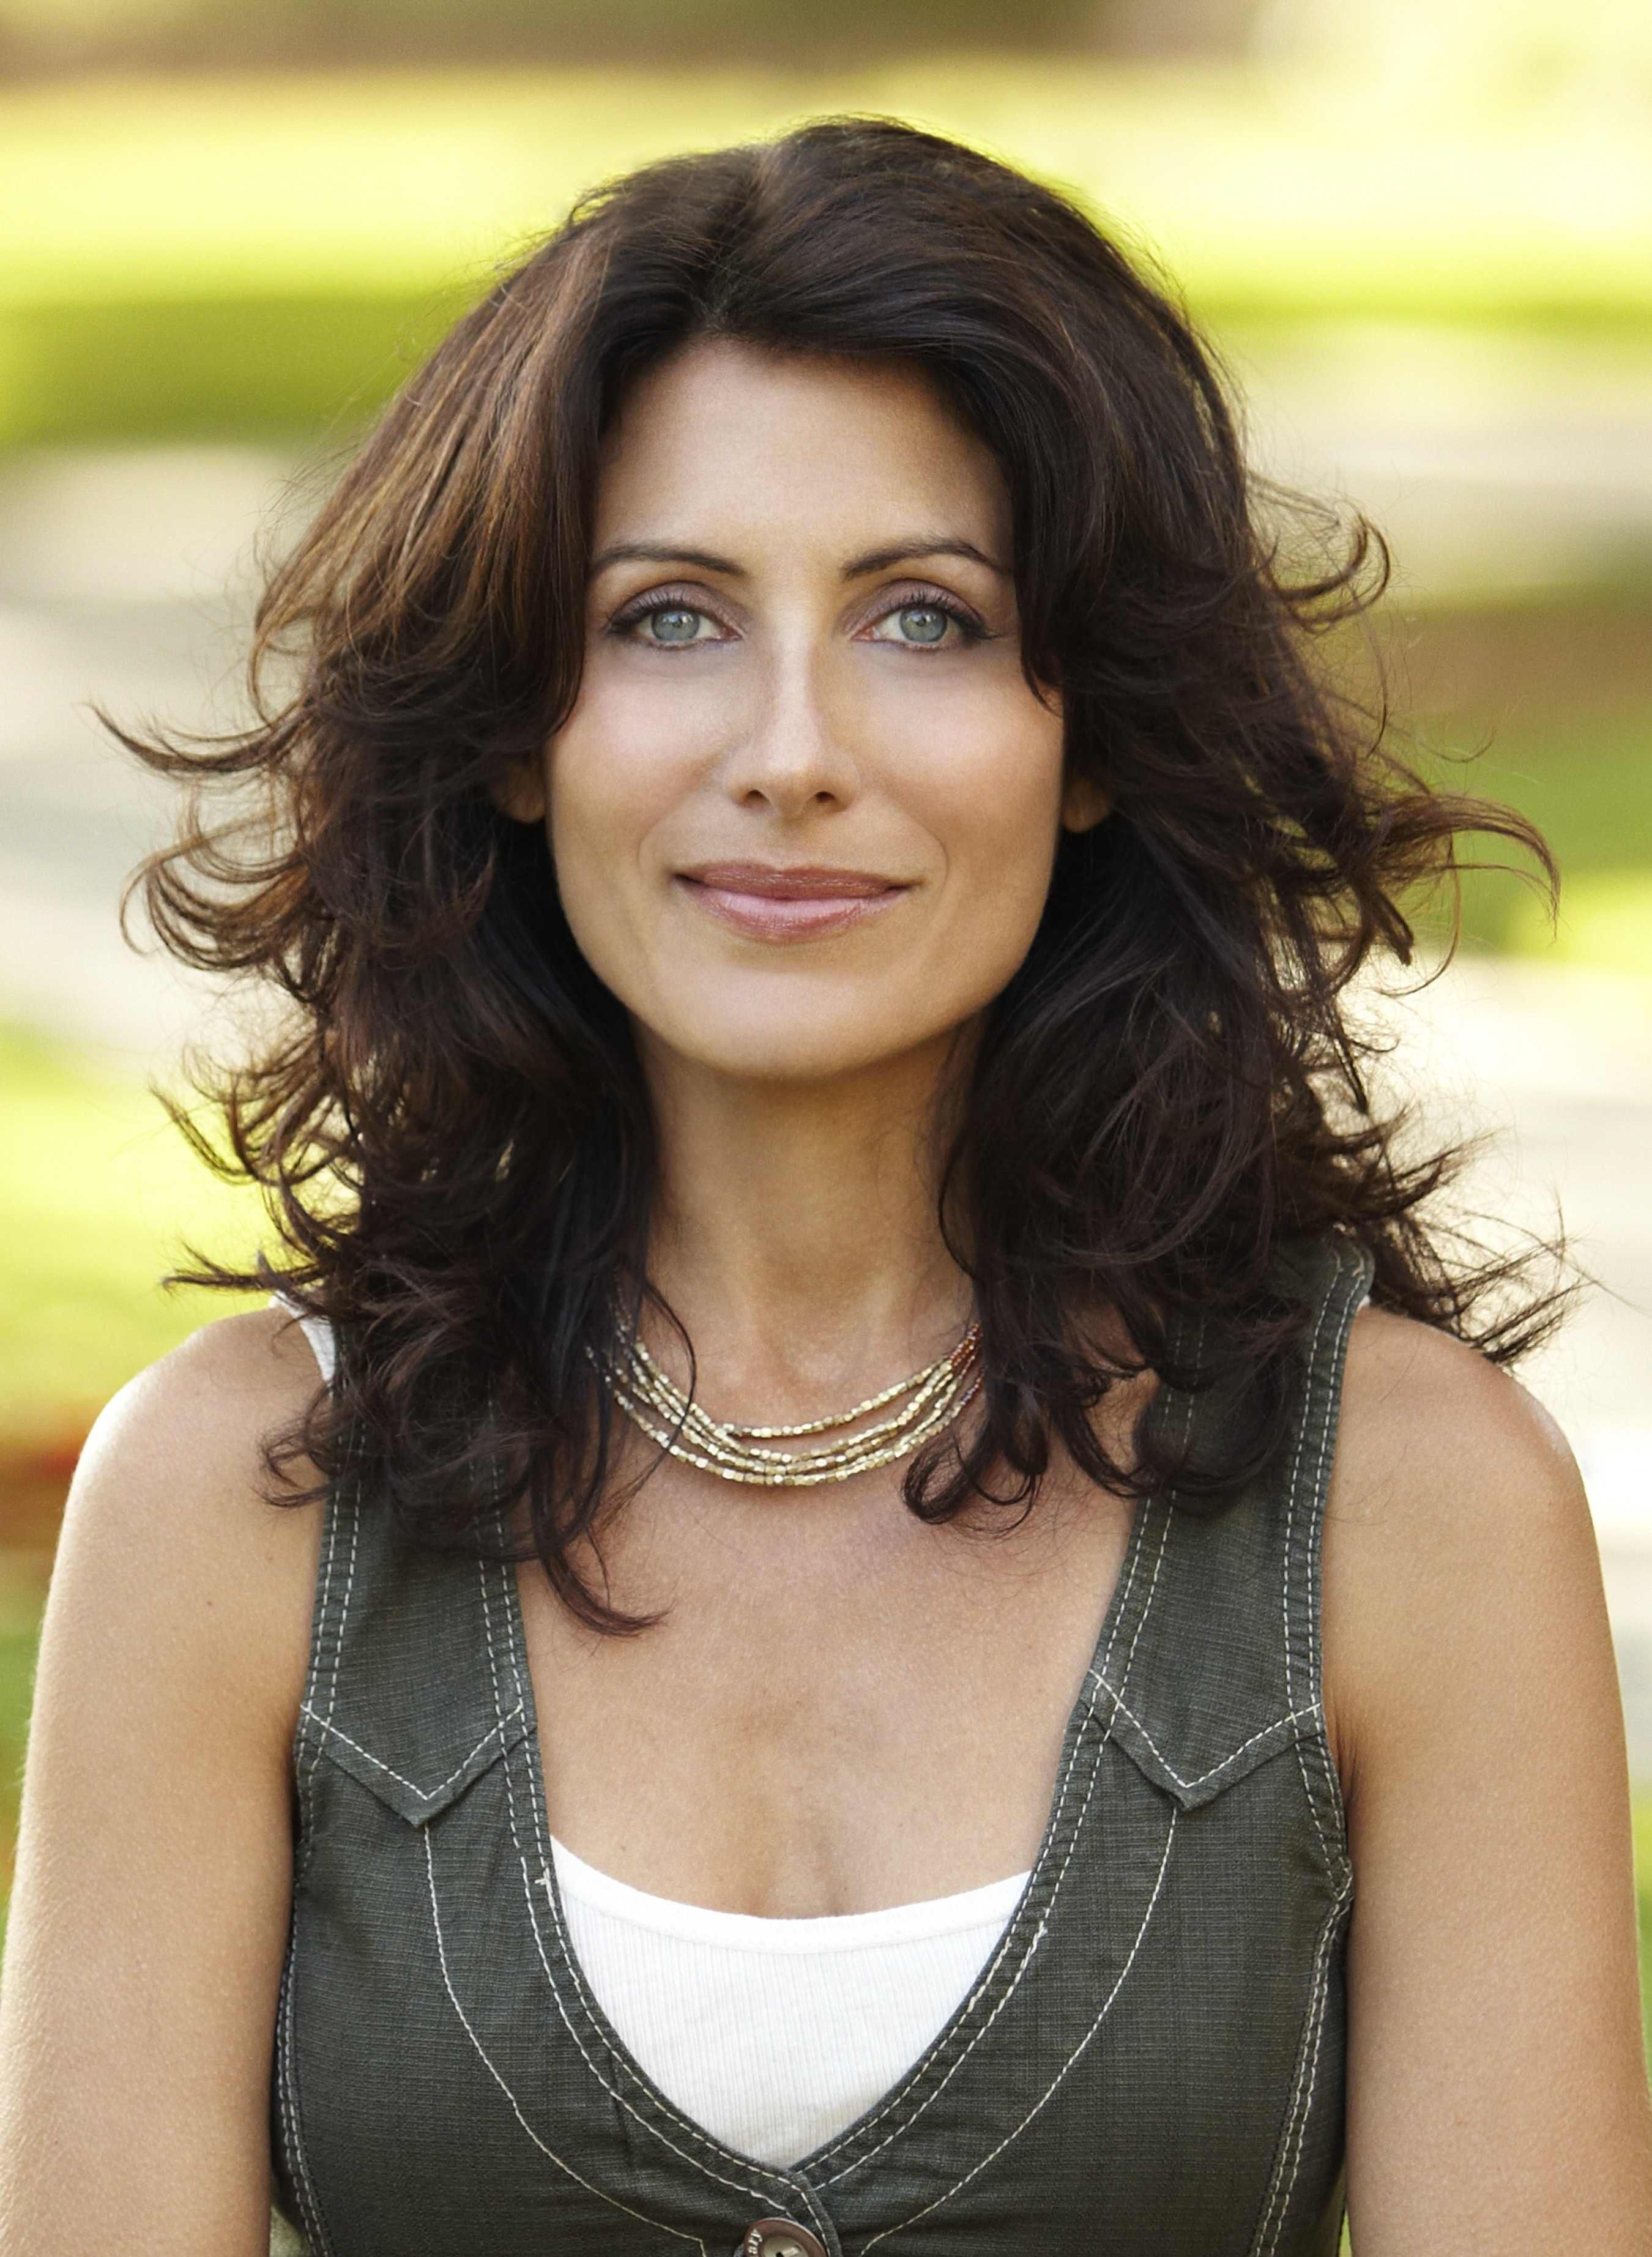 The 54-year old daughter of father (?) and mother(?) Lisa Edelstein in 2021 photo. Lisa Edelstein earned a  million dollar salary - leaving the net worth at  million in 2021